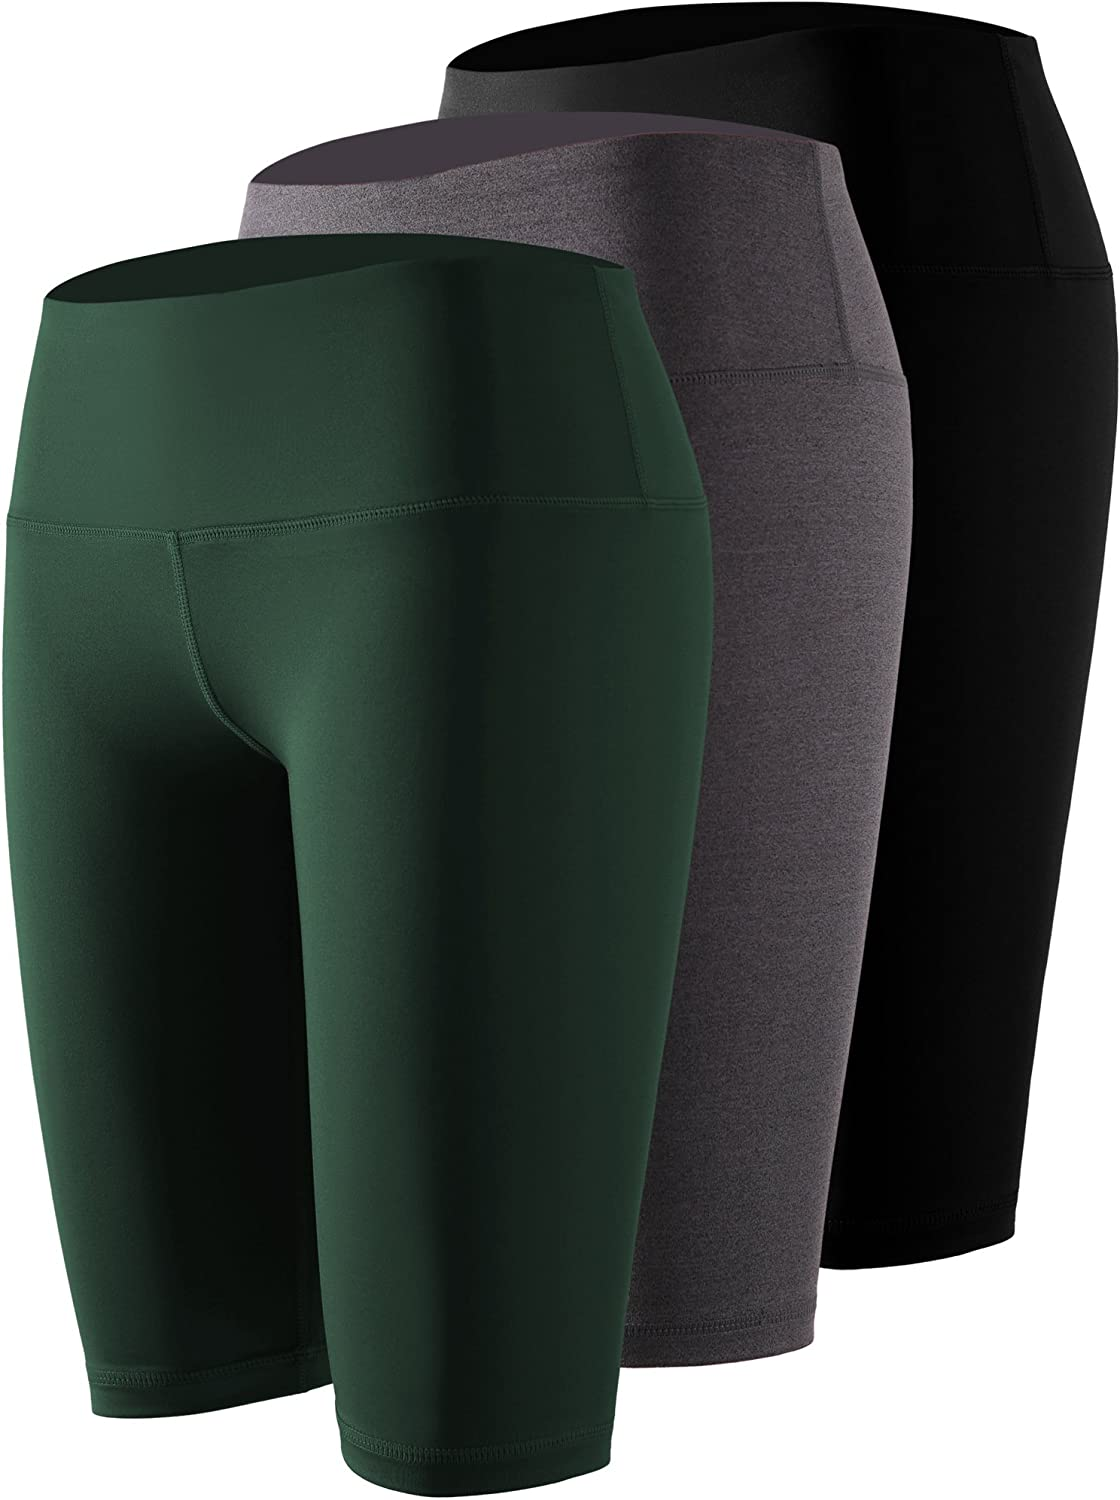 Cadmus Women's Tummy Control Workout Athletic Yoga Shorts with Pocket,3 Pack,Black,Grey,Dark Green,Small